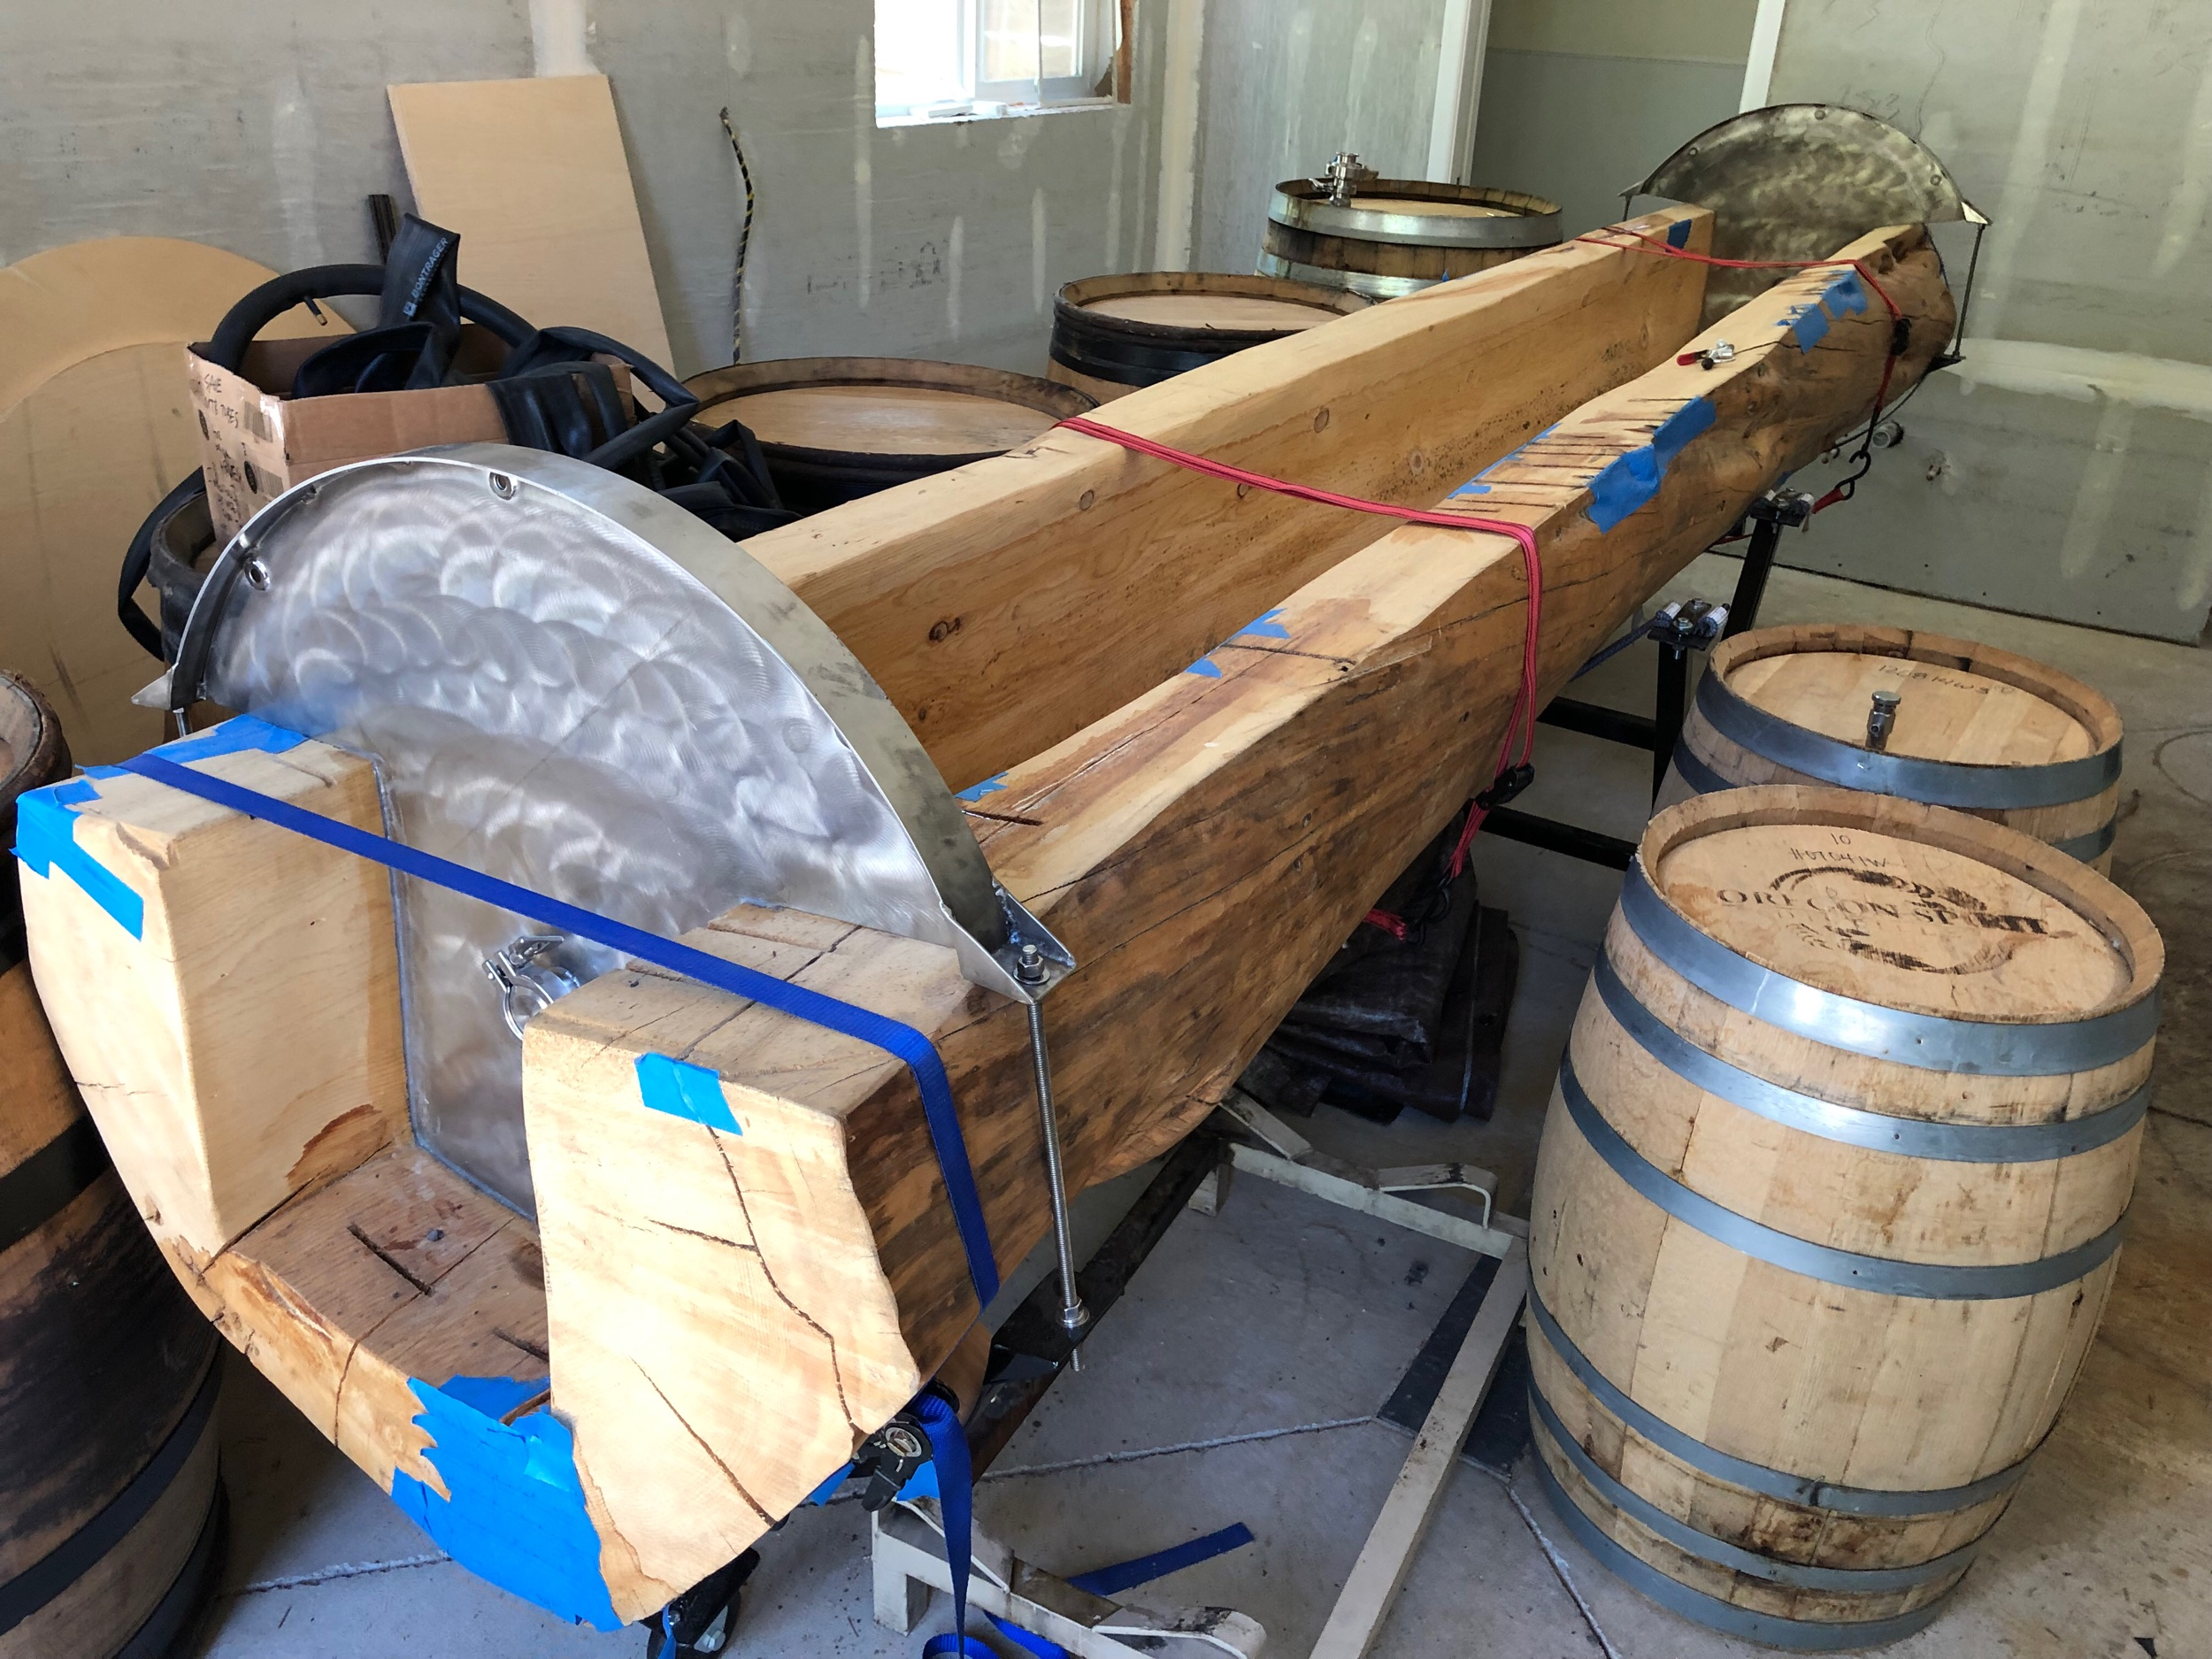 The future coolship—a spruce tree.